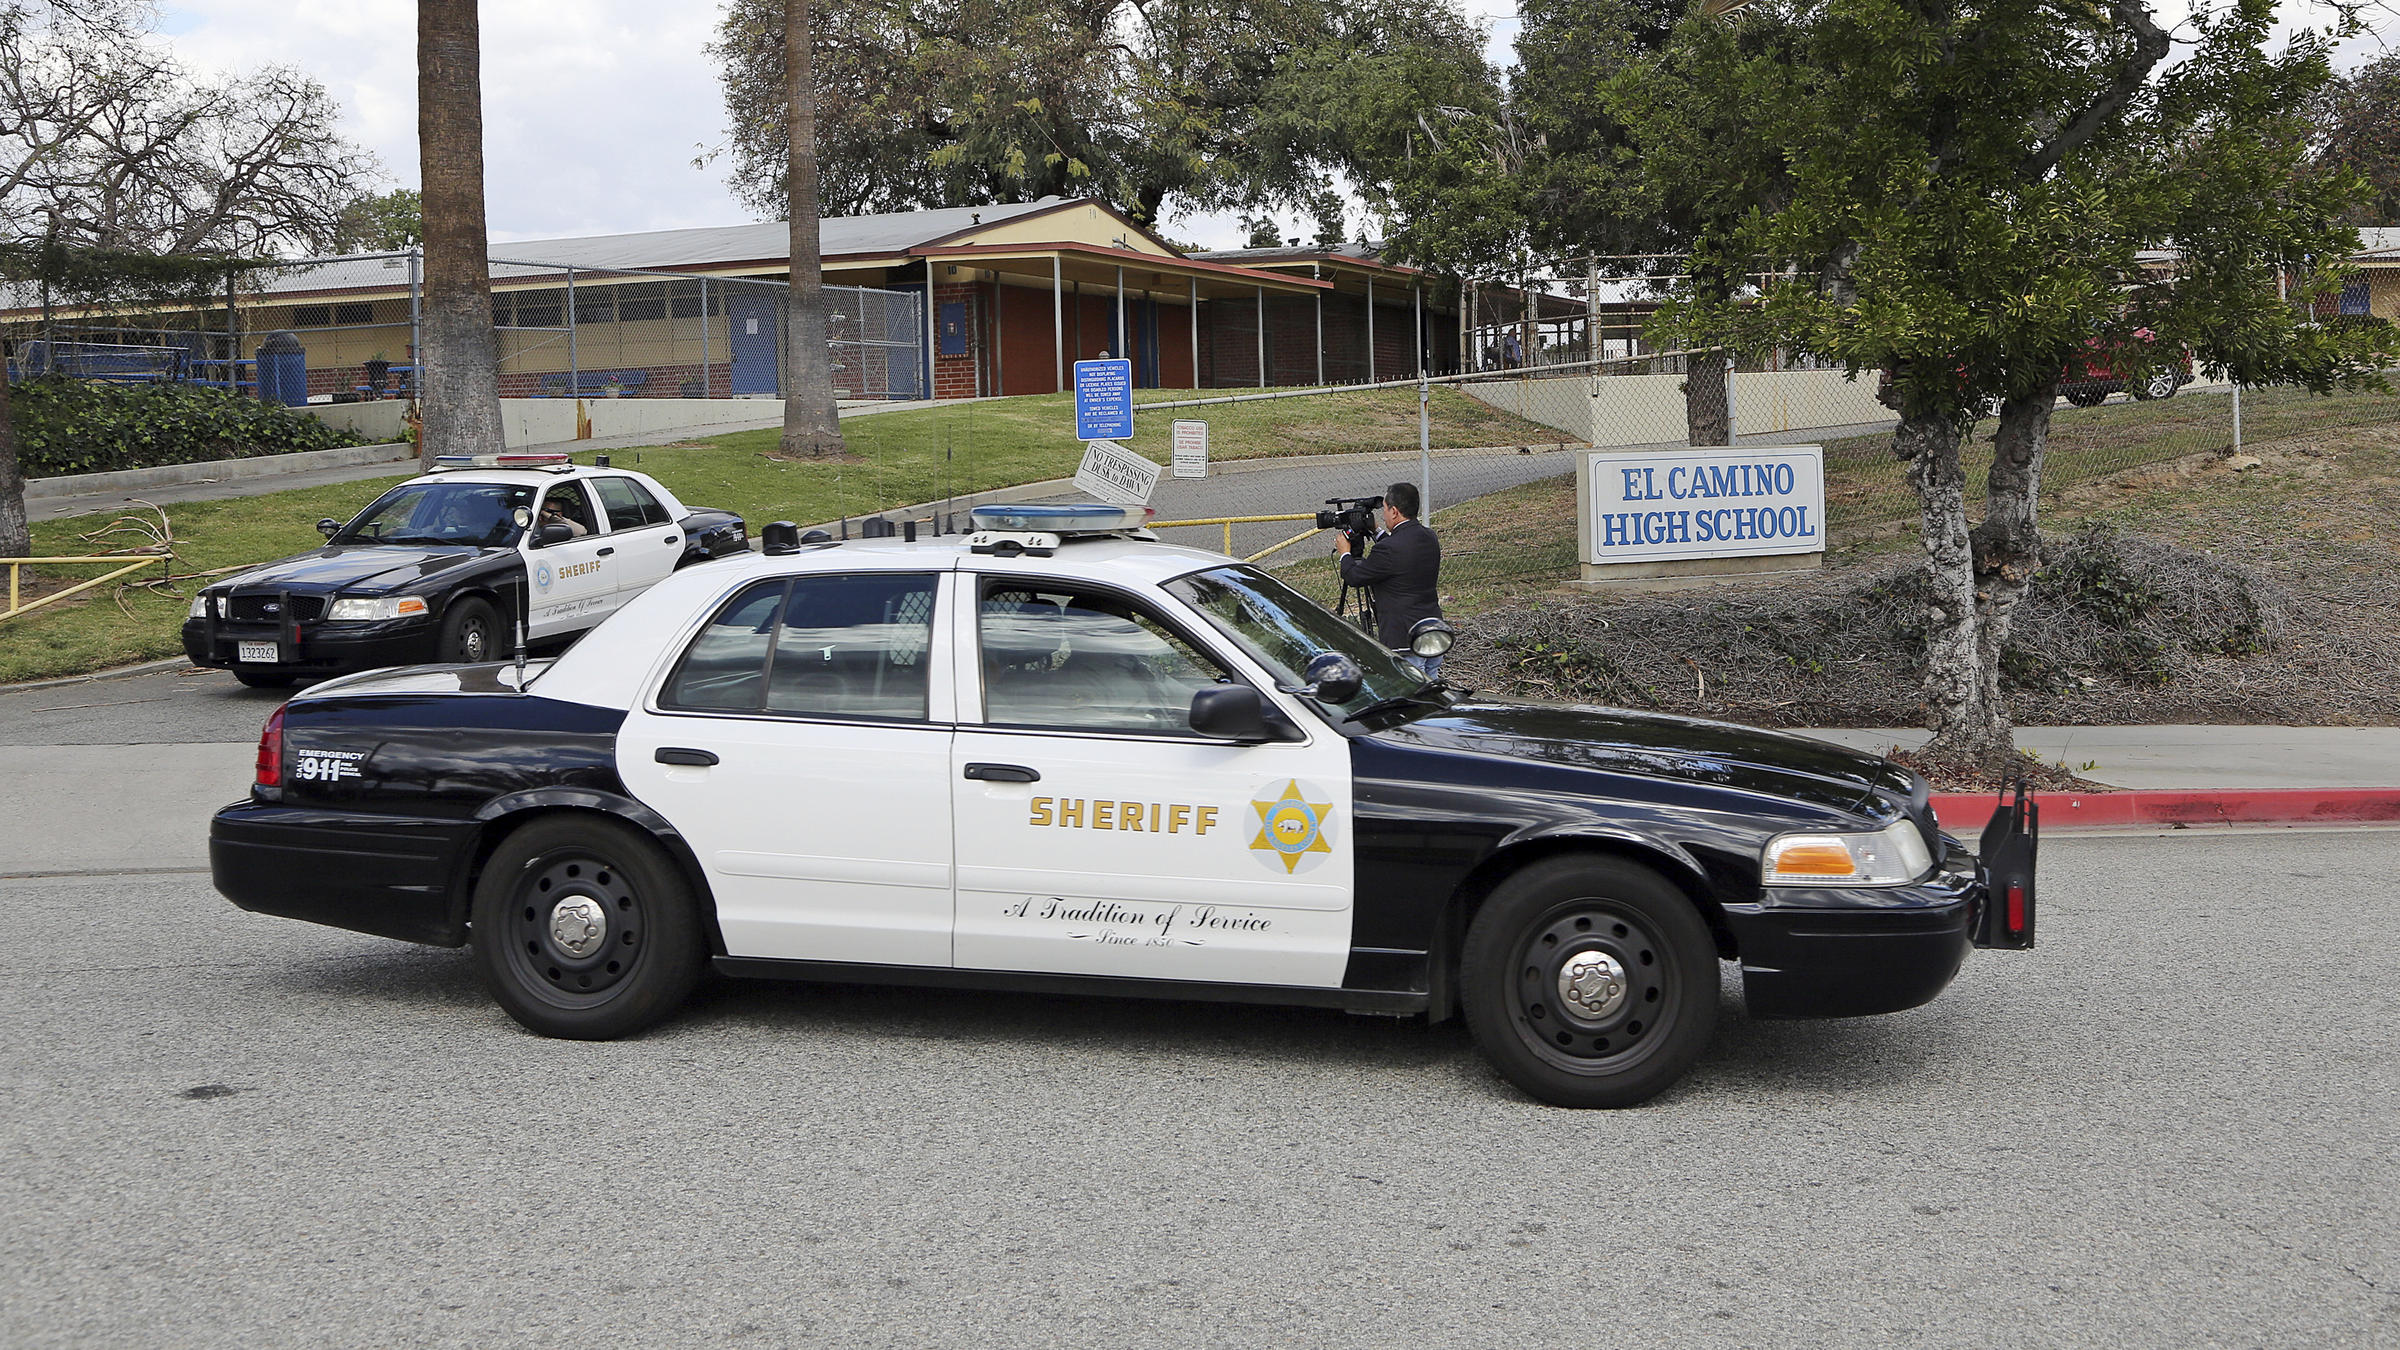 California school shooting plot thwarted, police say